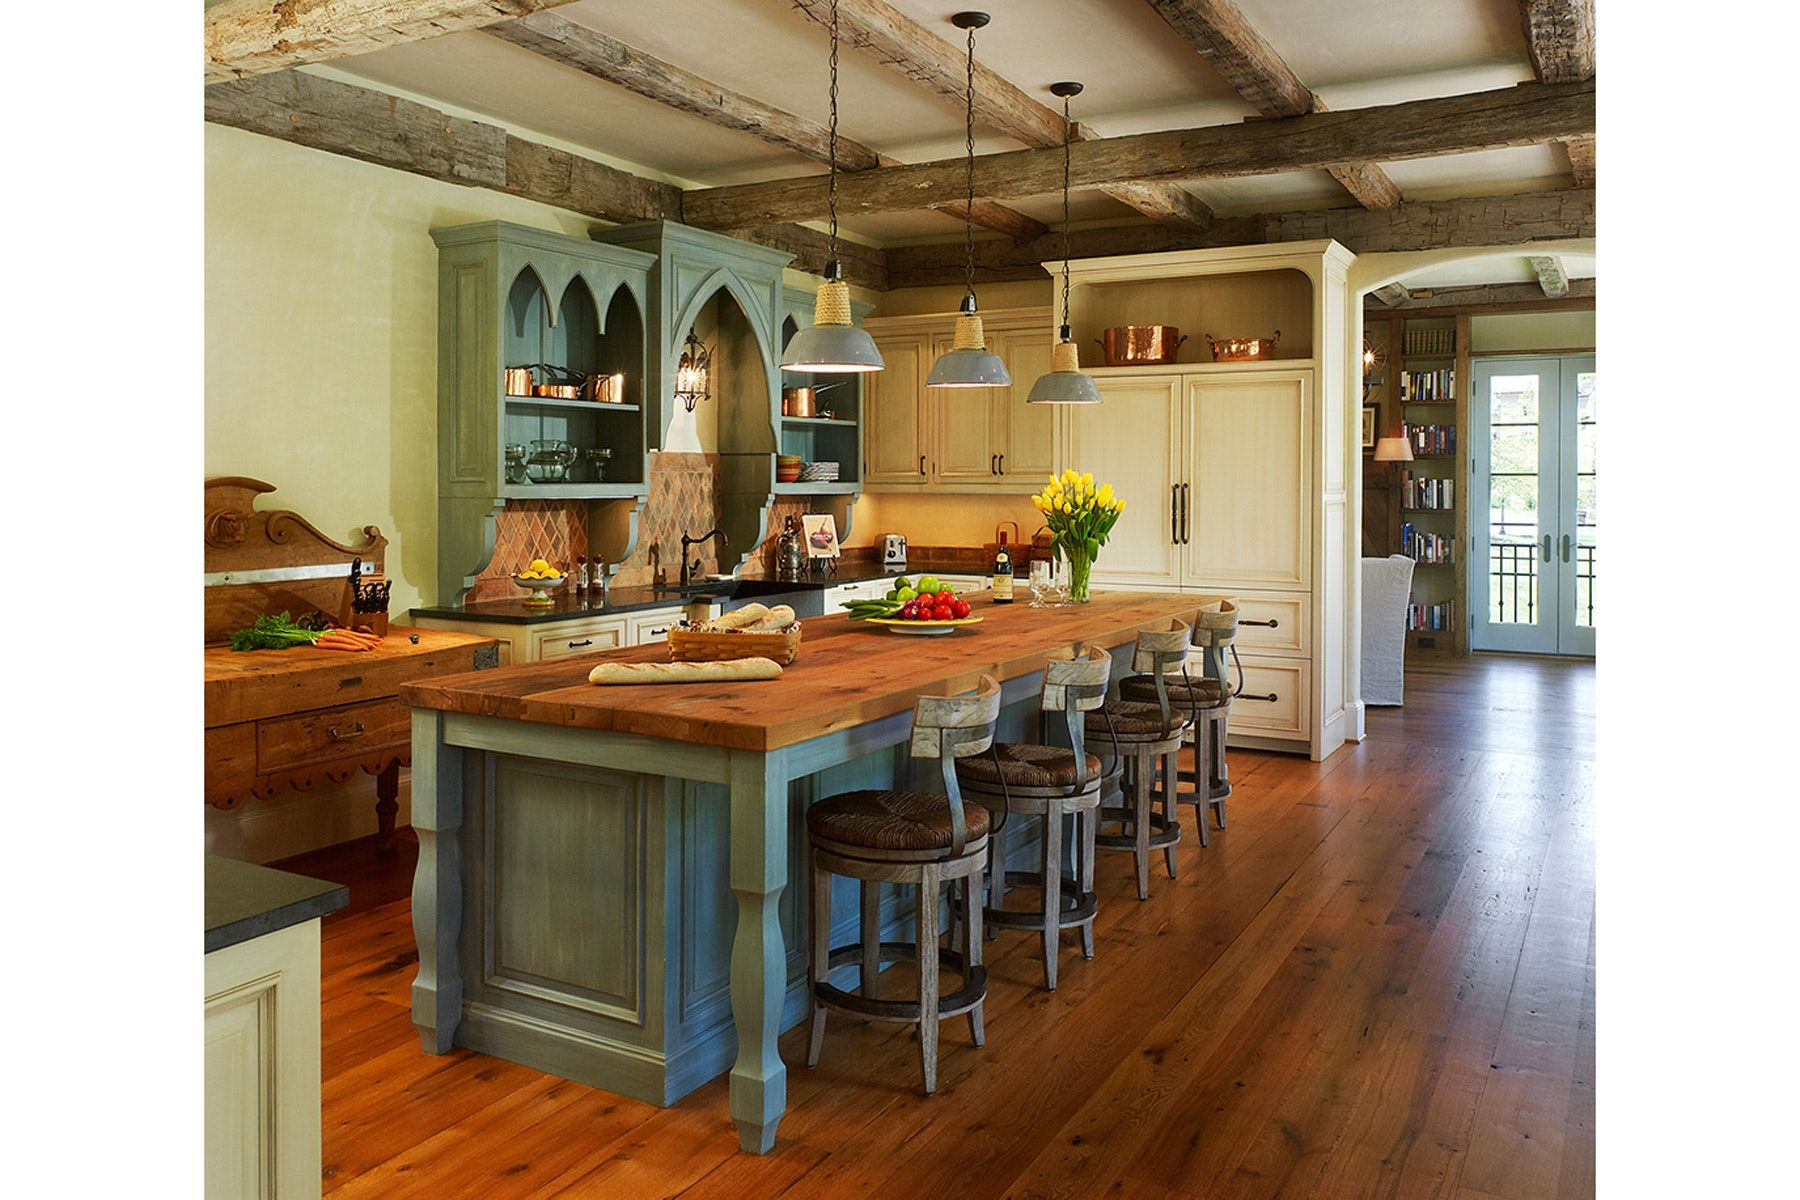 French country kitchen favorite places u spaces pinterest